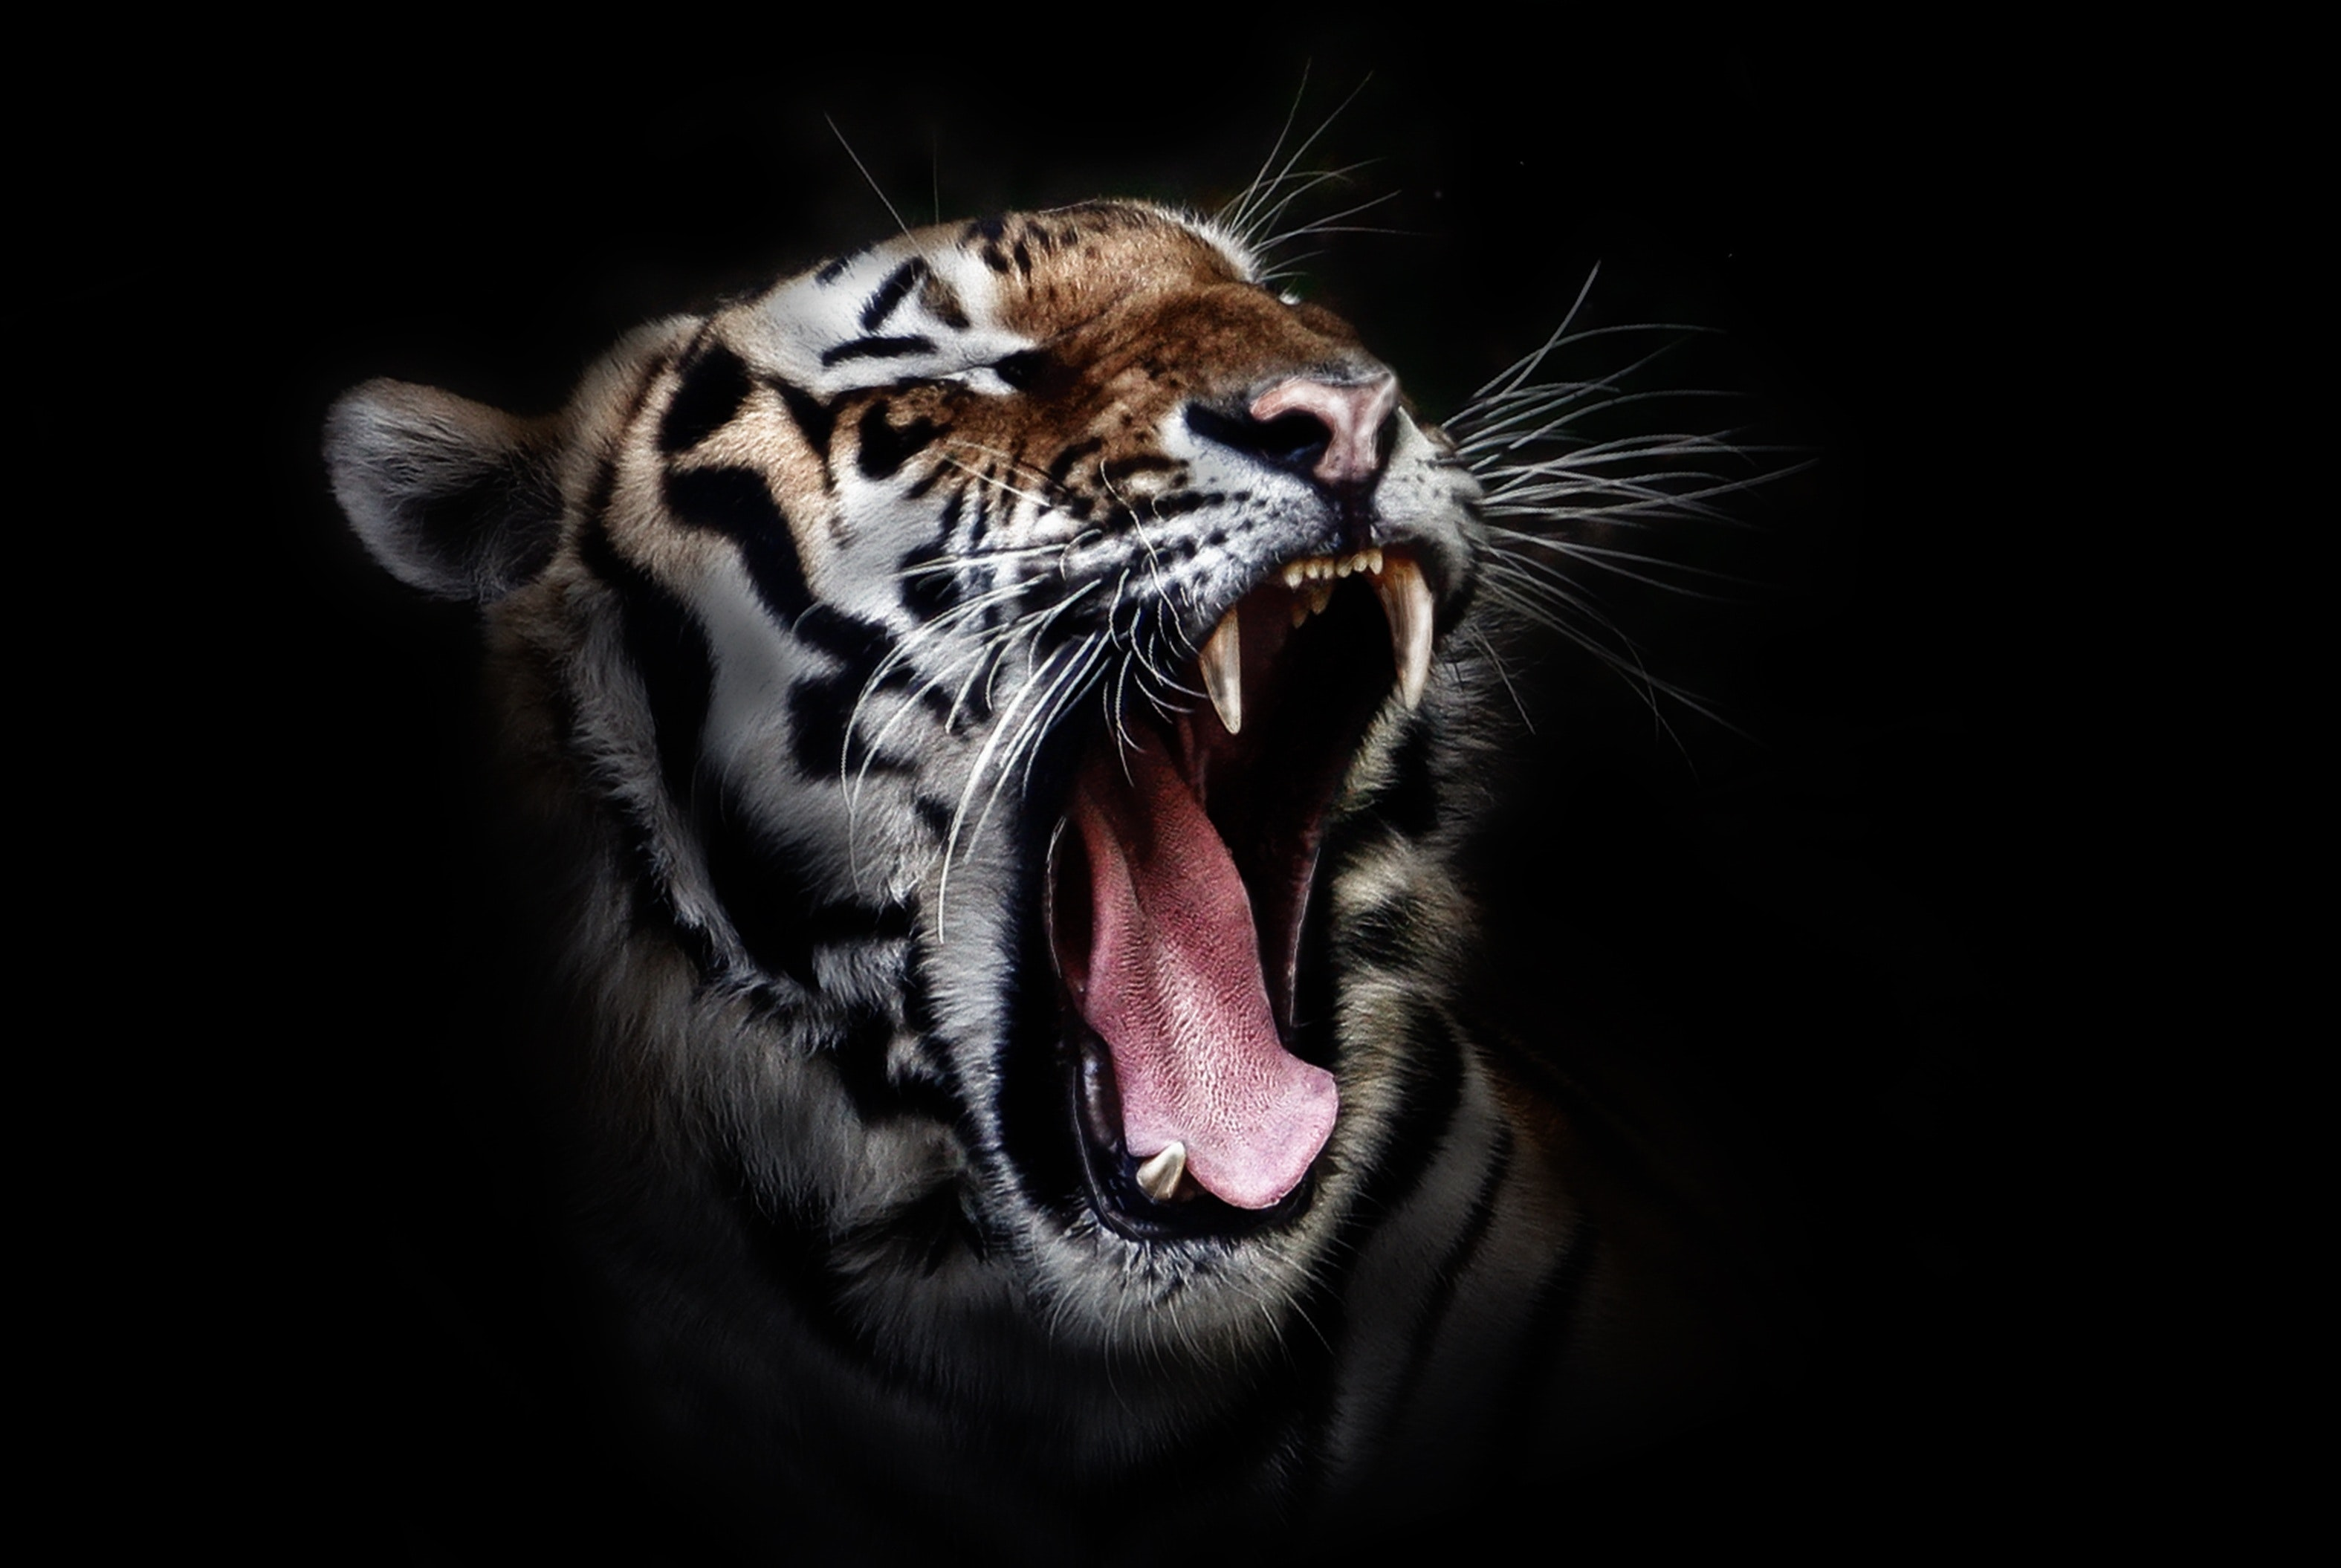 Wallpaper Tiger Roaring